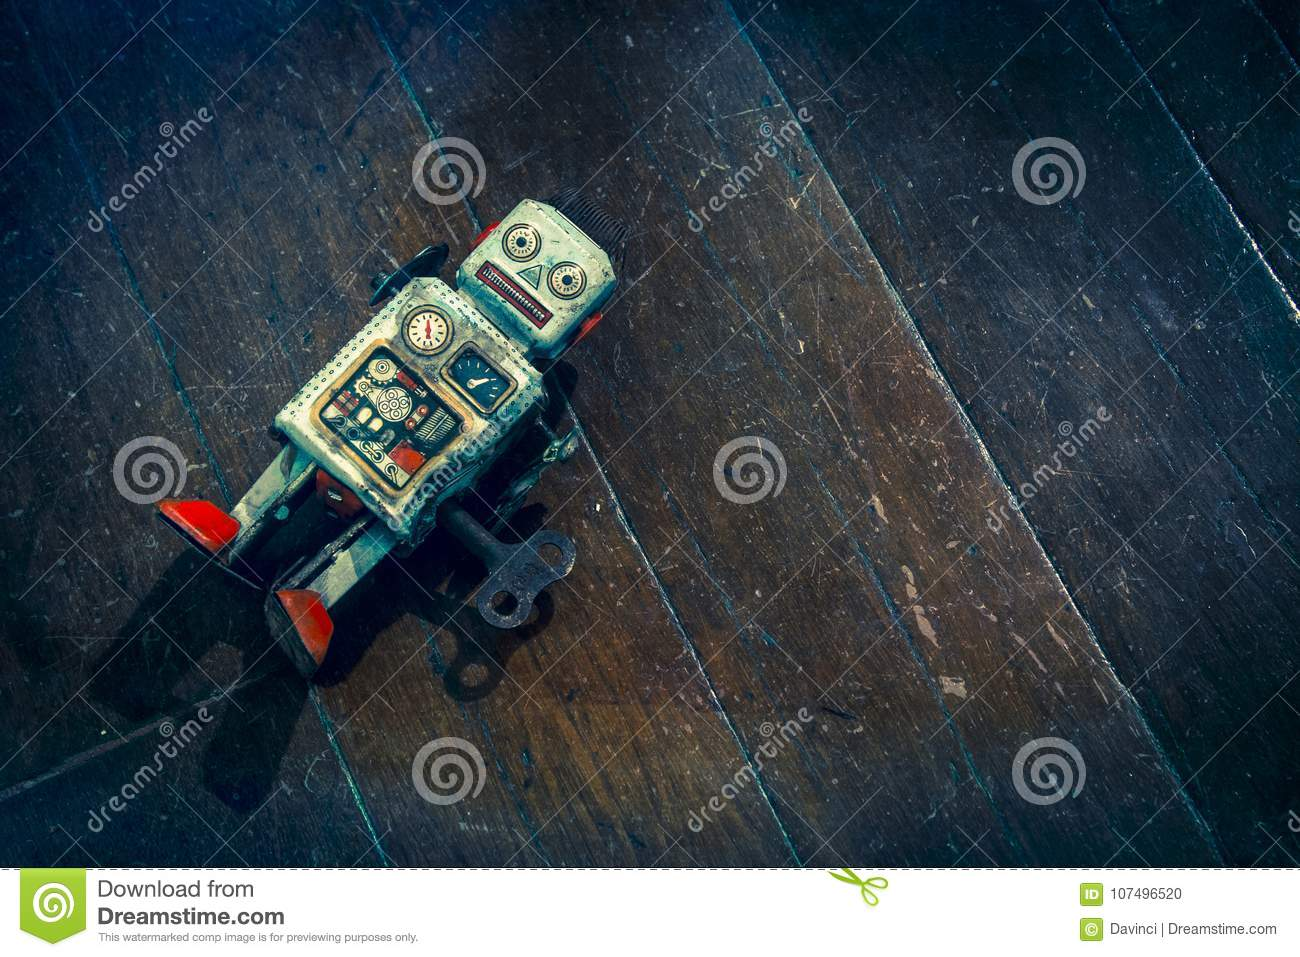 Sad beat up old retro robot on a wooden floor